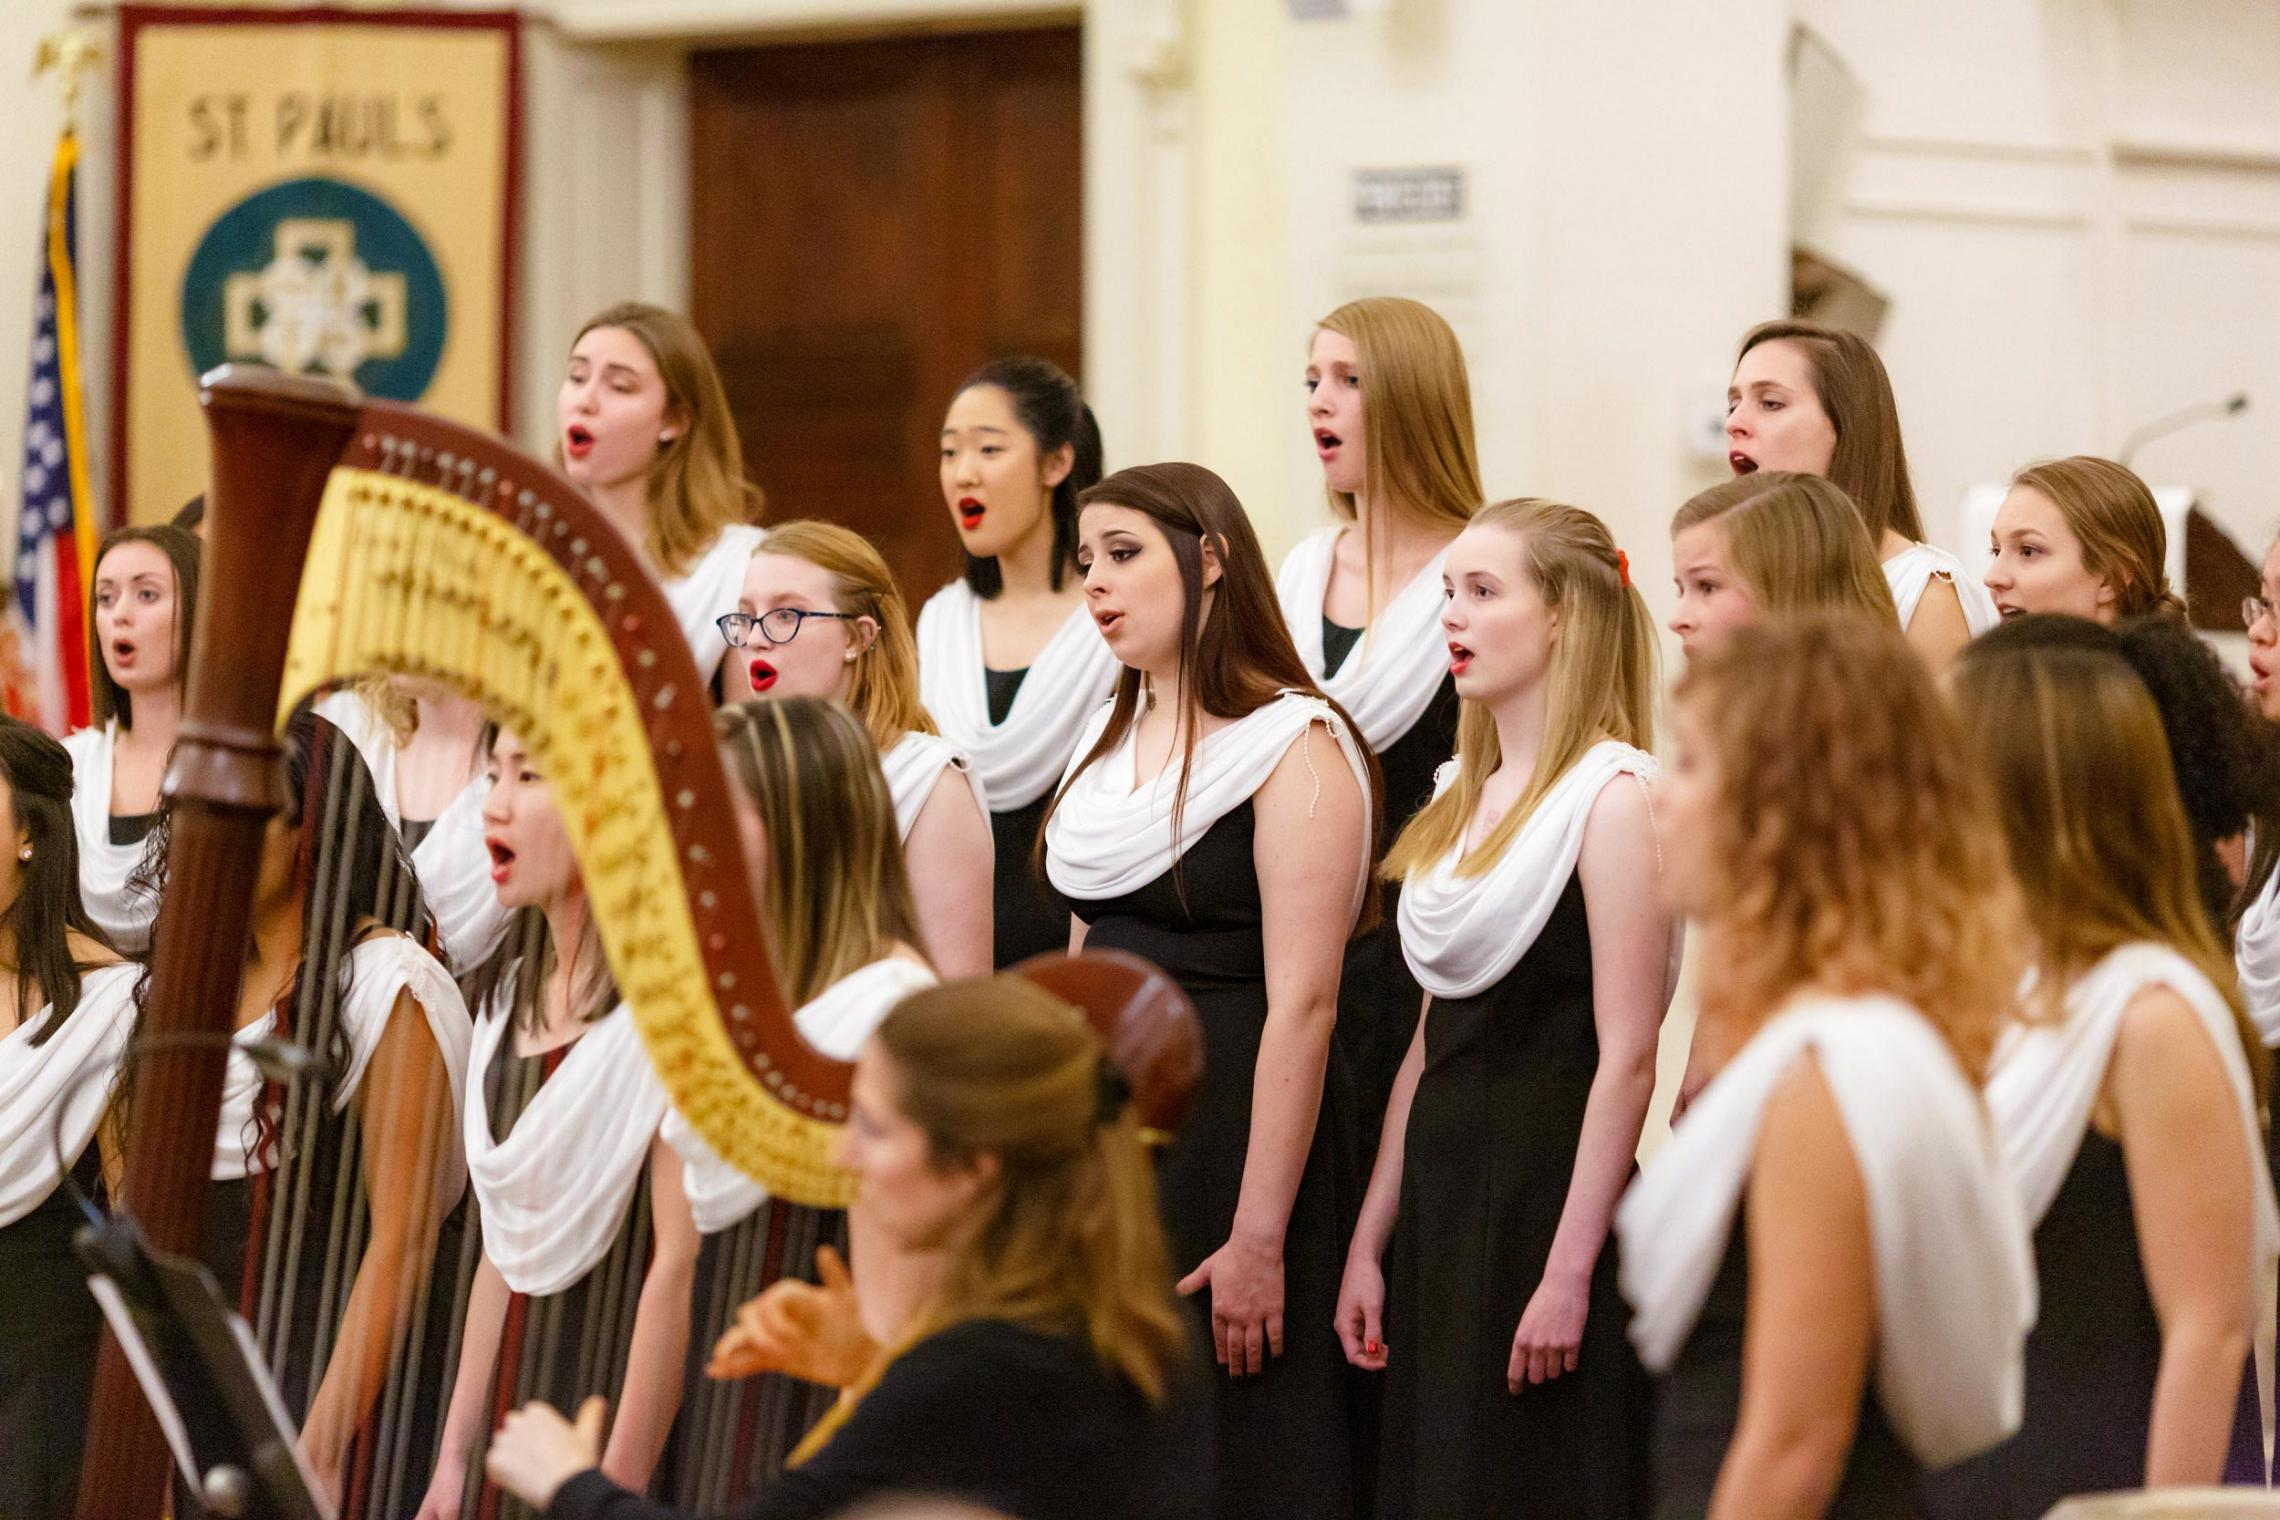 The Virginia Women's Chorus includes undergraduate and graduate students from many different schools at UVA. (Photo by Zurgis Photography)